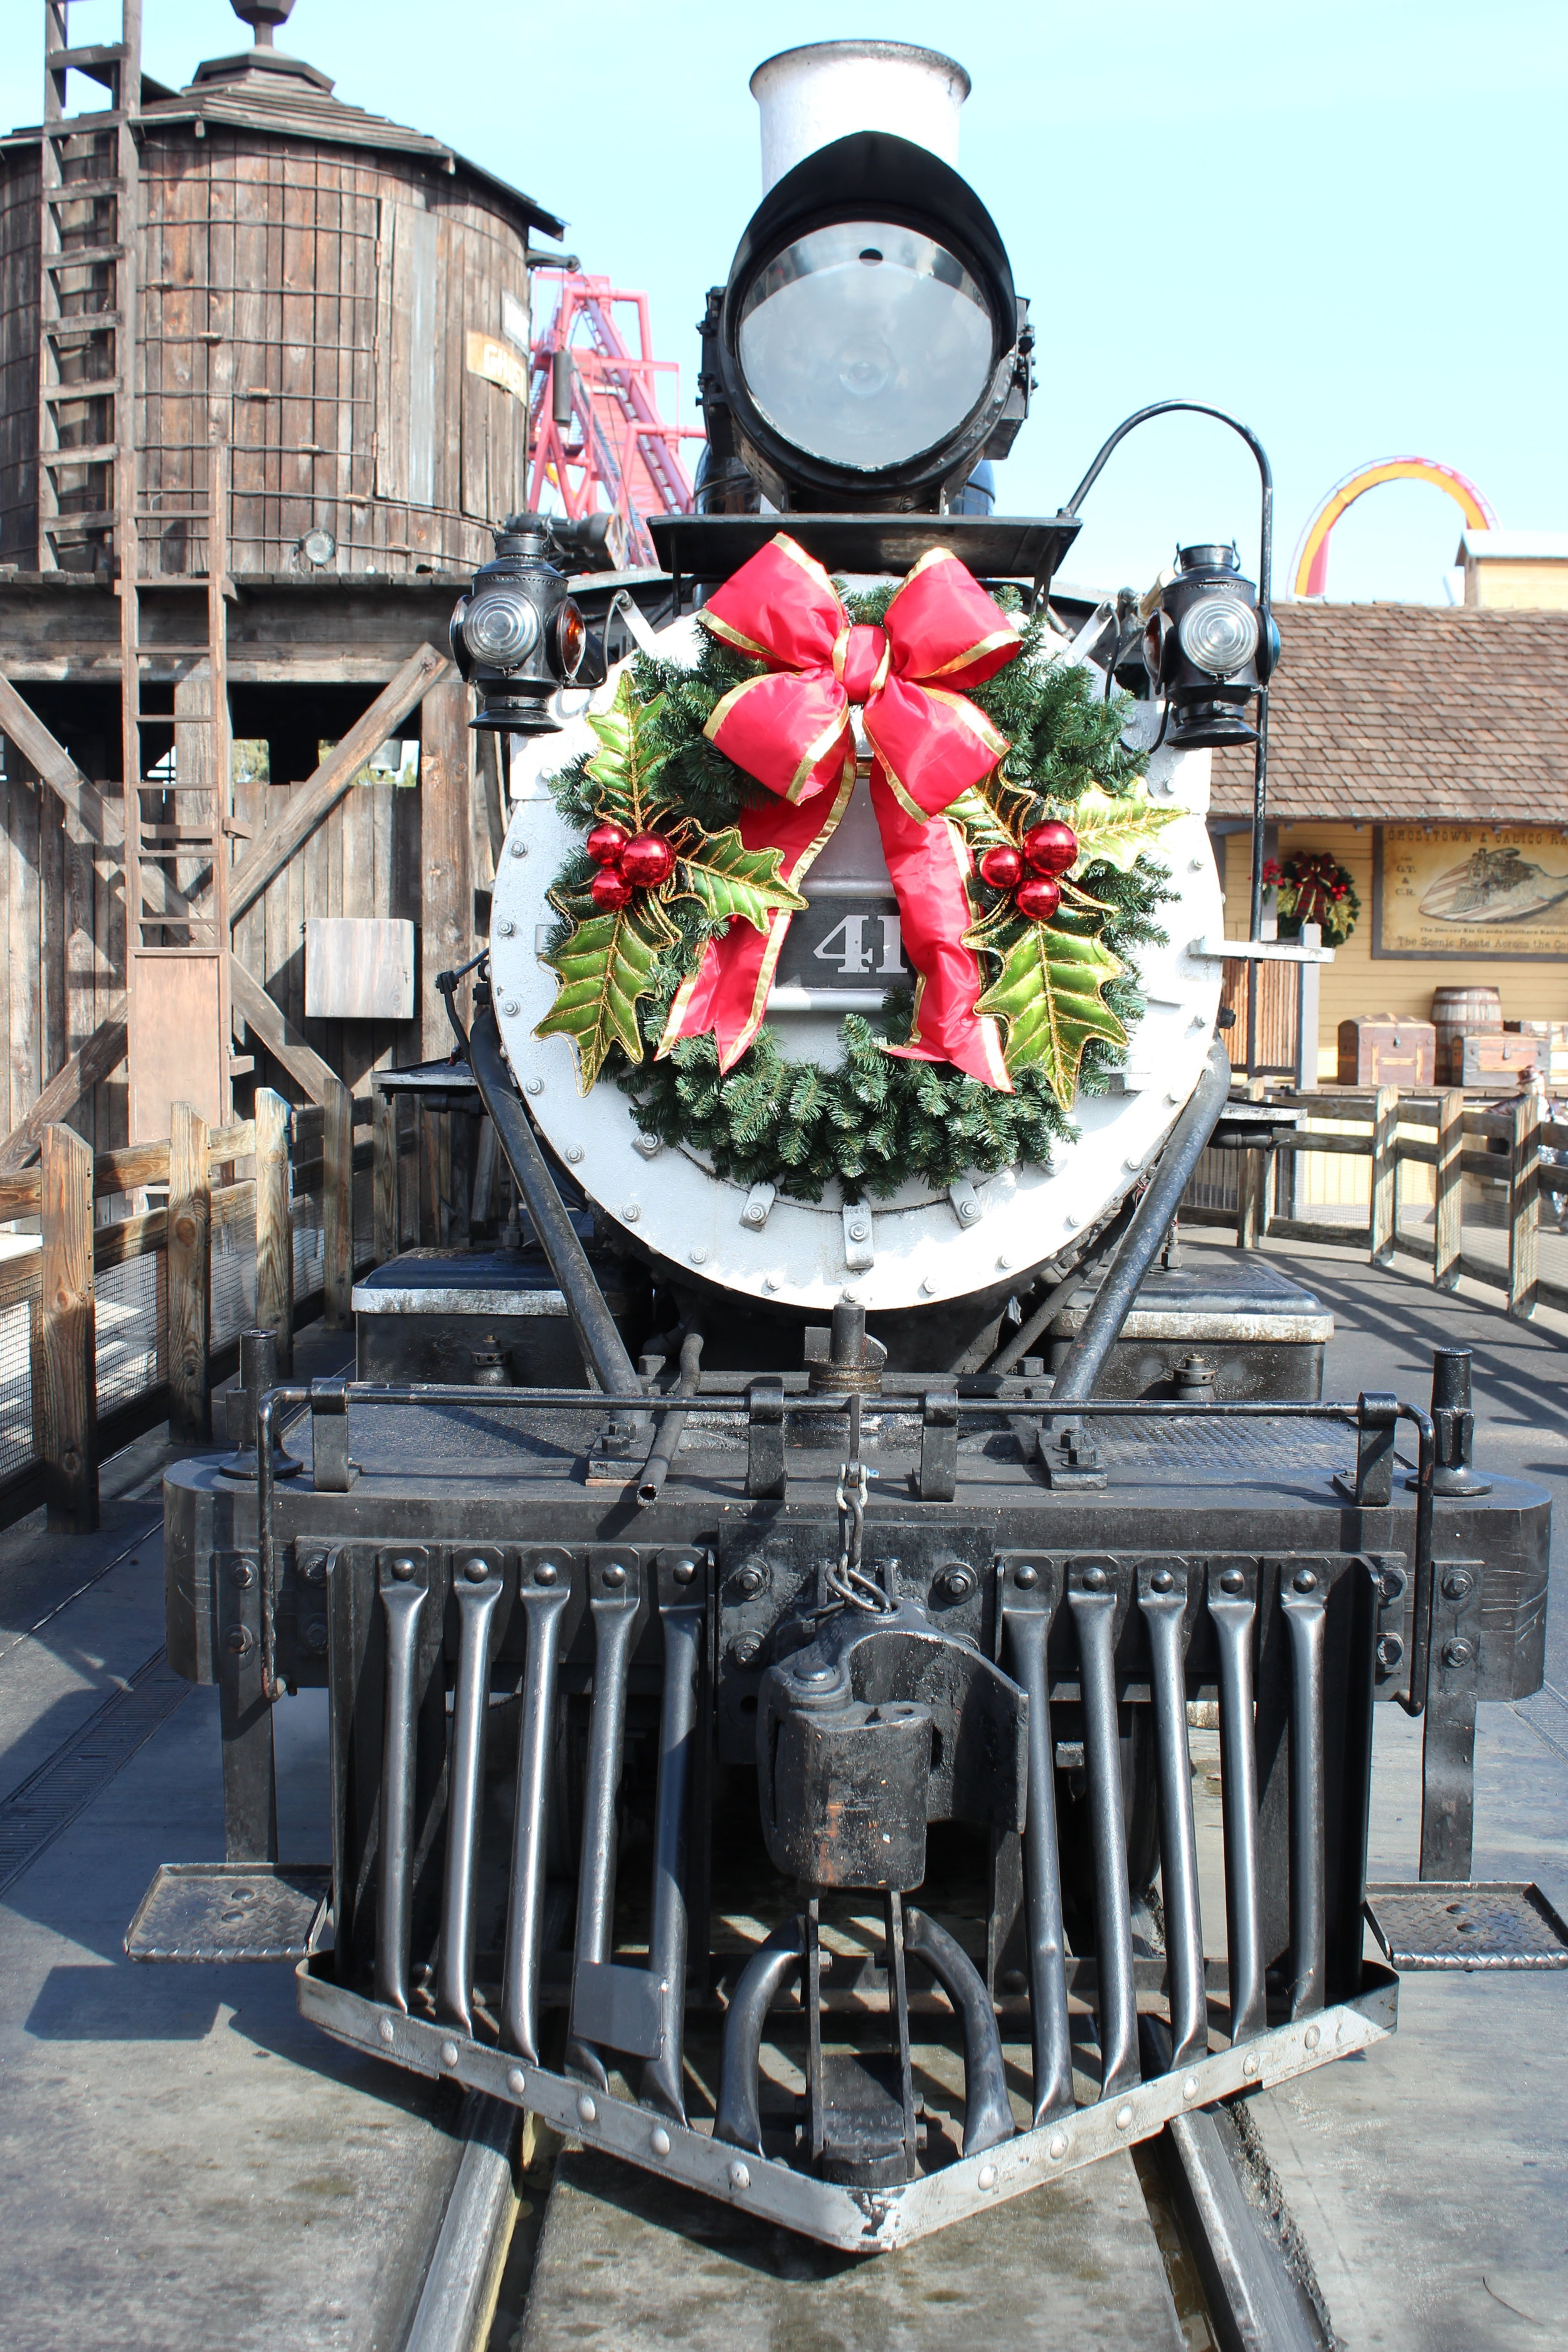 Engine No. 41 looking festive as she makes her way round the farm! No visit would be complete without a ride on this iconic piece of Knott's history!